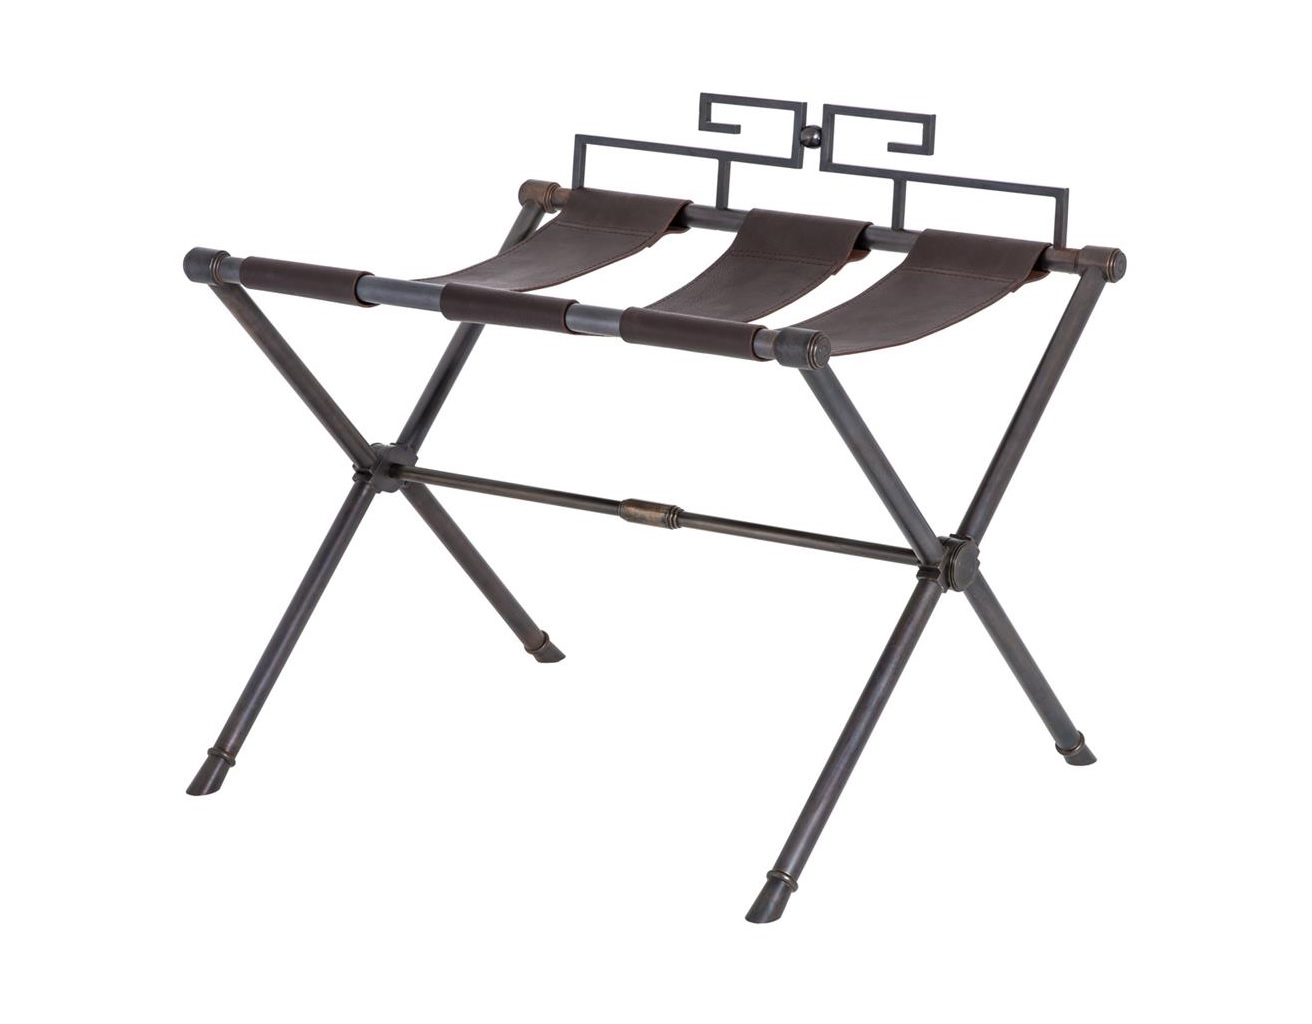 Стул Luggage Rack AlcazarСтулья для сада<br><br><br>kit: None<br>gender: None